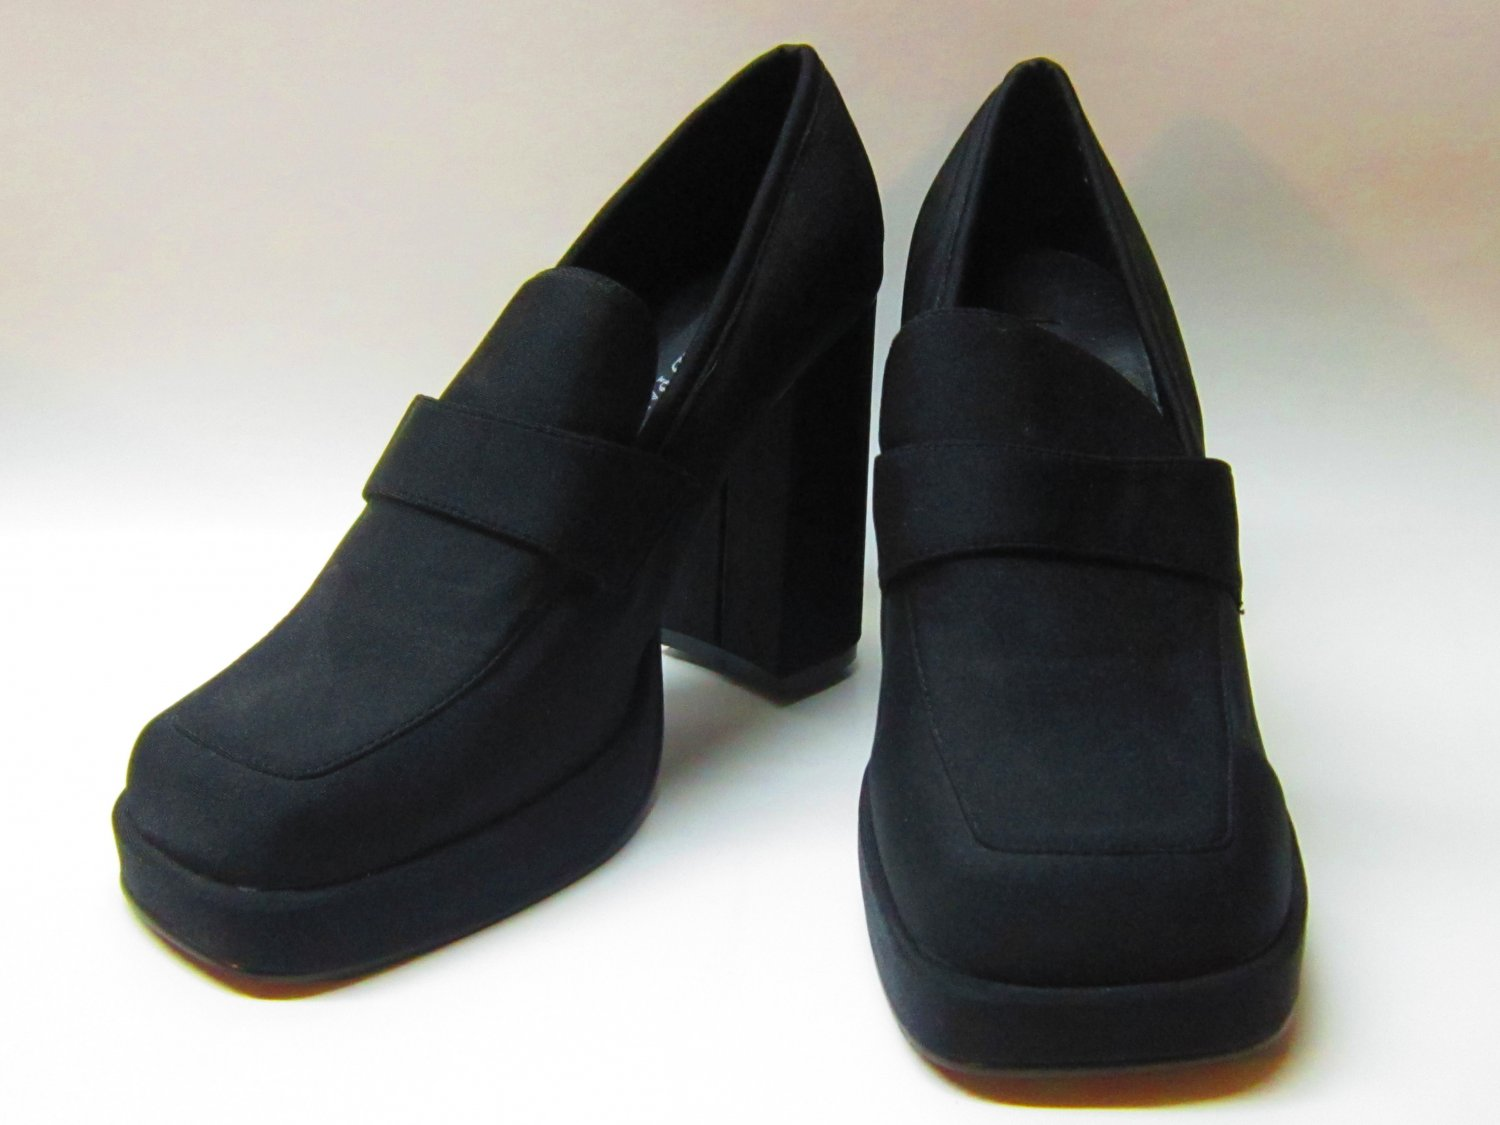 Edward Paul Black Fabric Covered Platform Heels Size 9